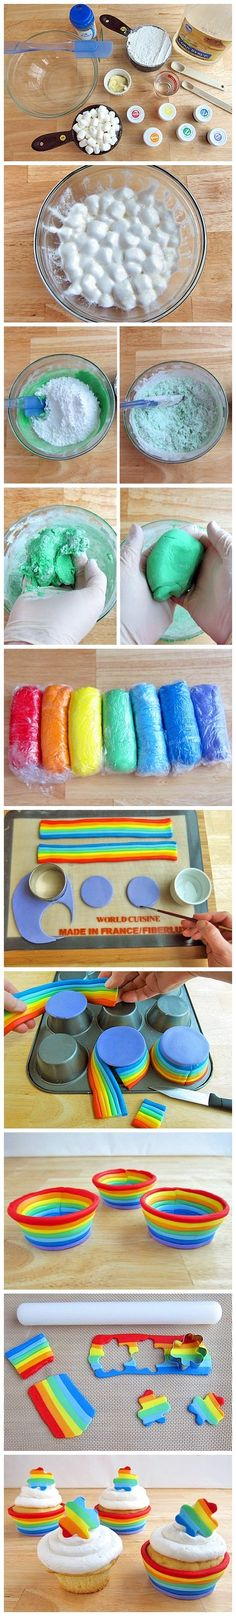 While I may not want something so fancy, this fondant recipe looks super simple!